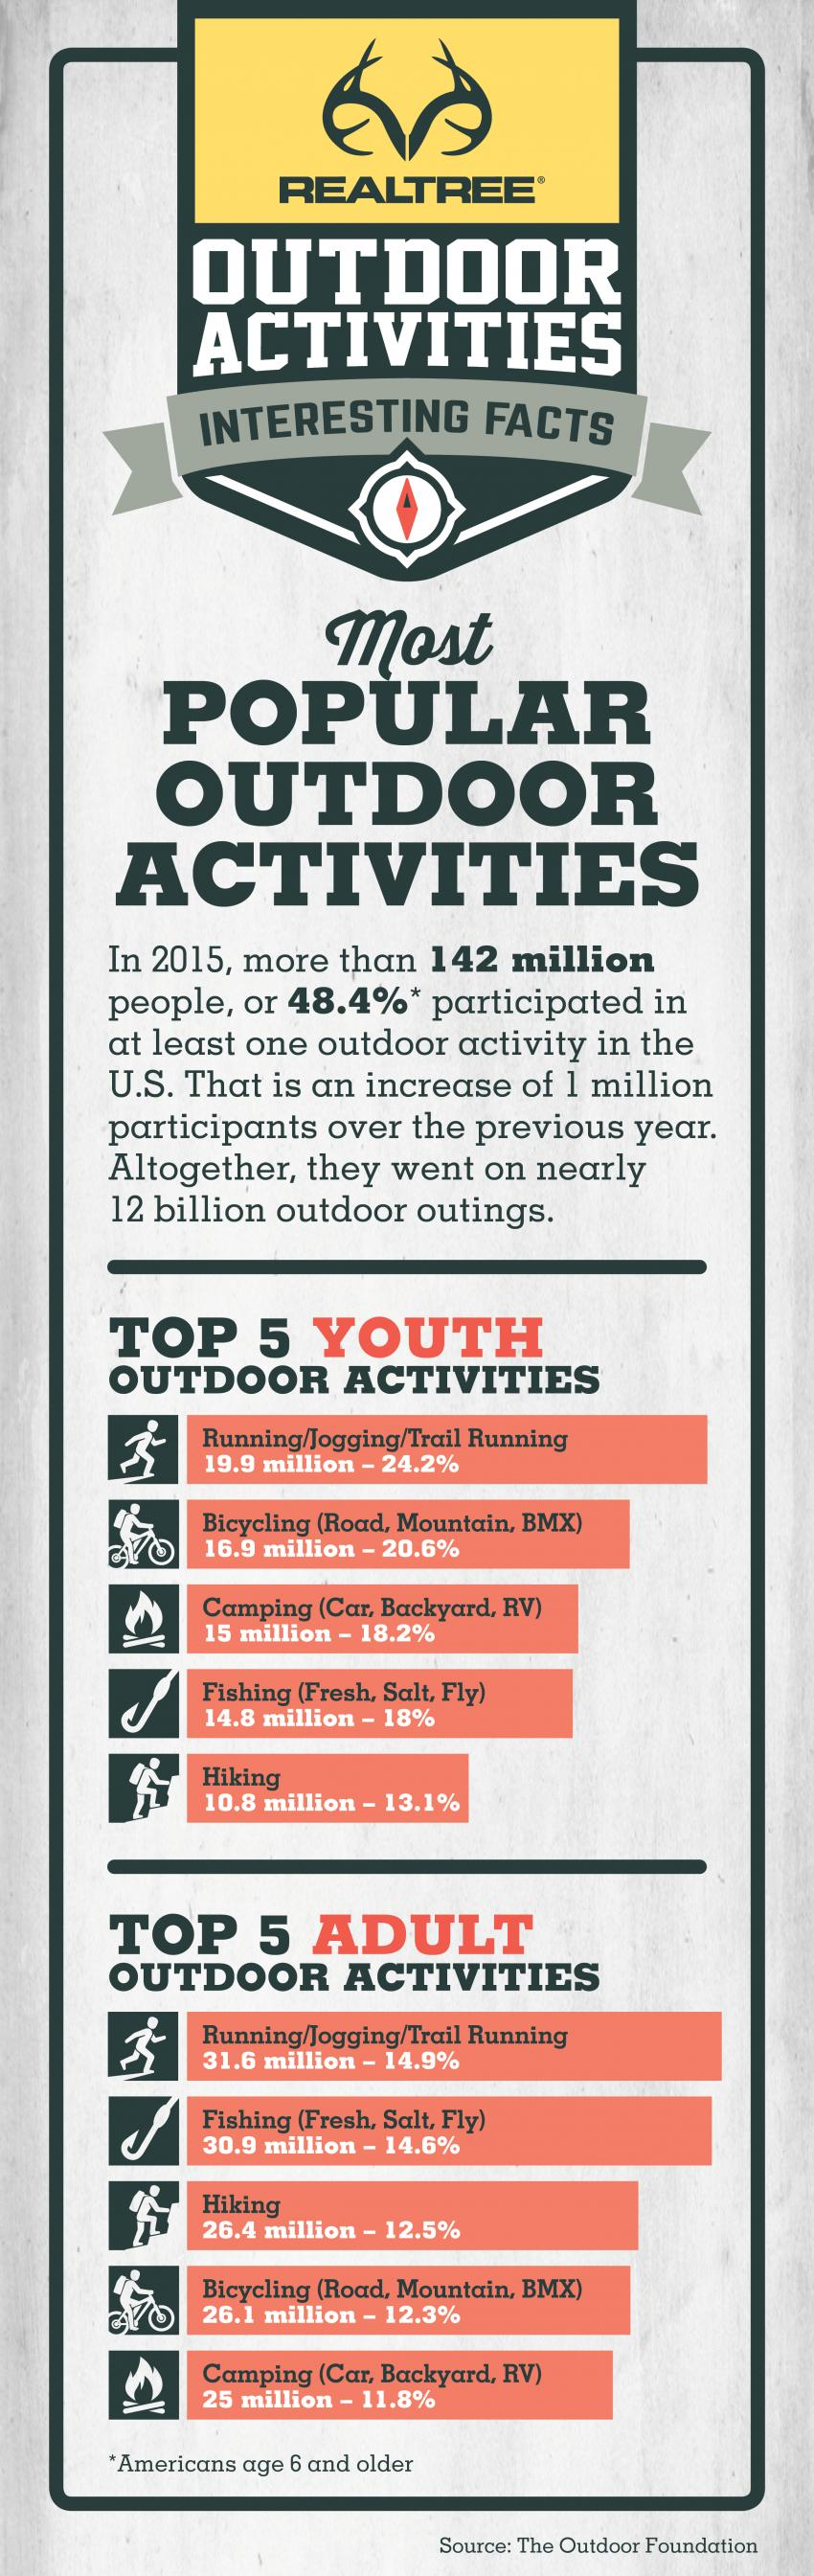 Top outdoor Activities Infographic 2016 | Realtree B2B